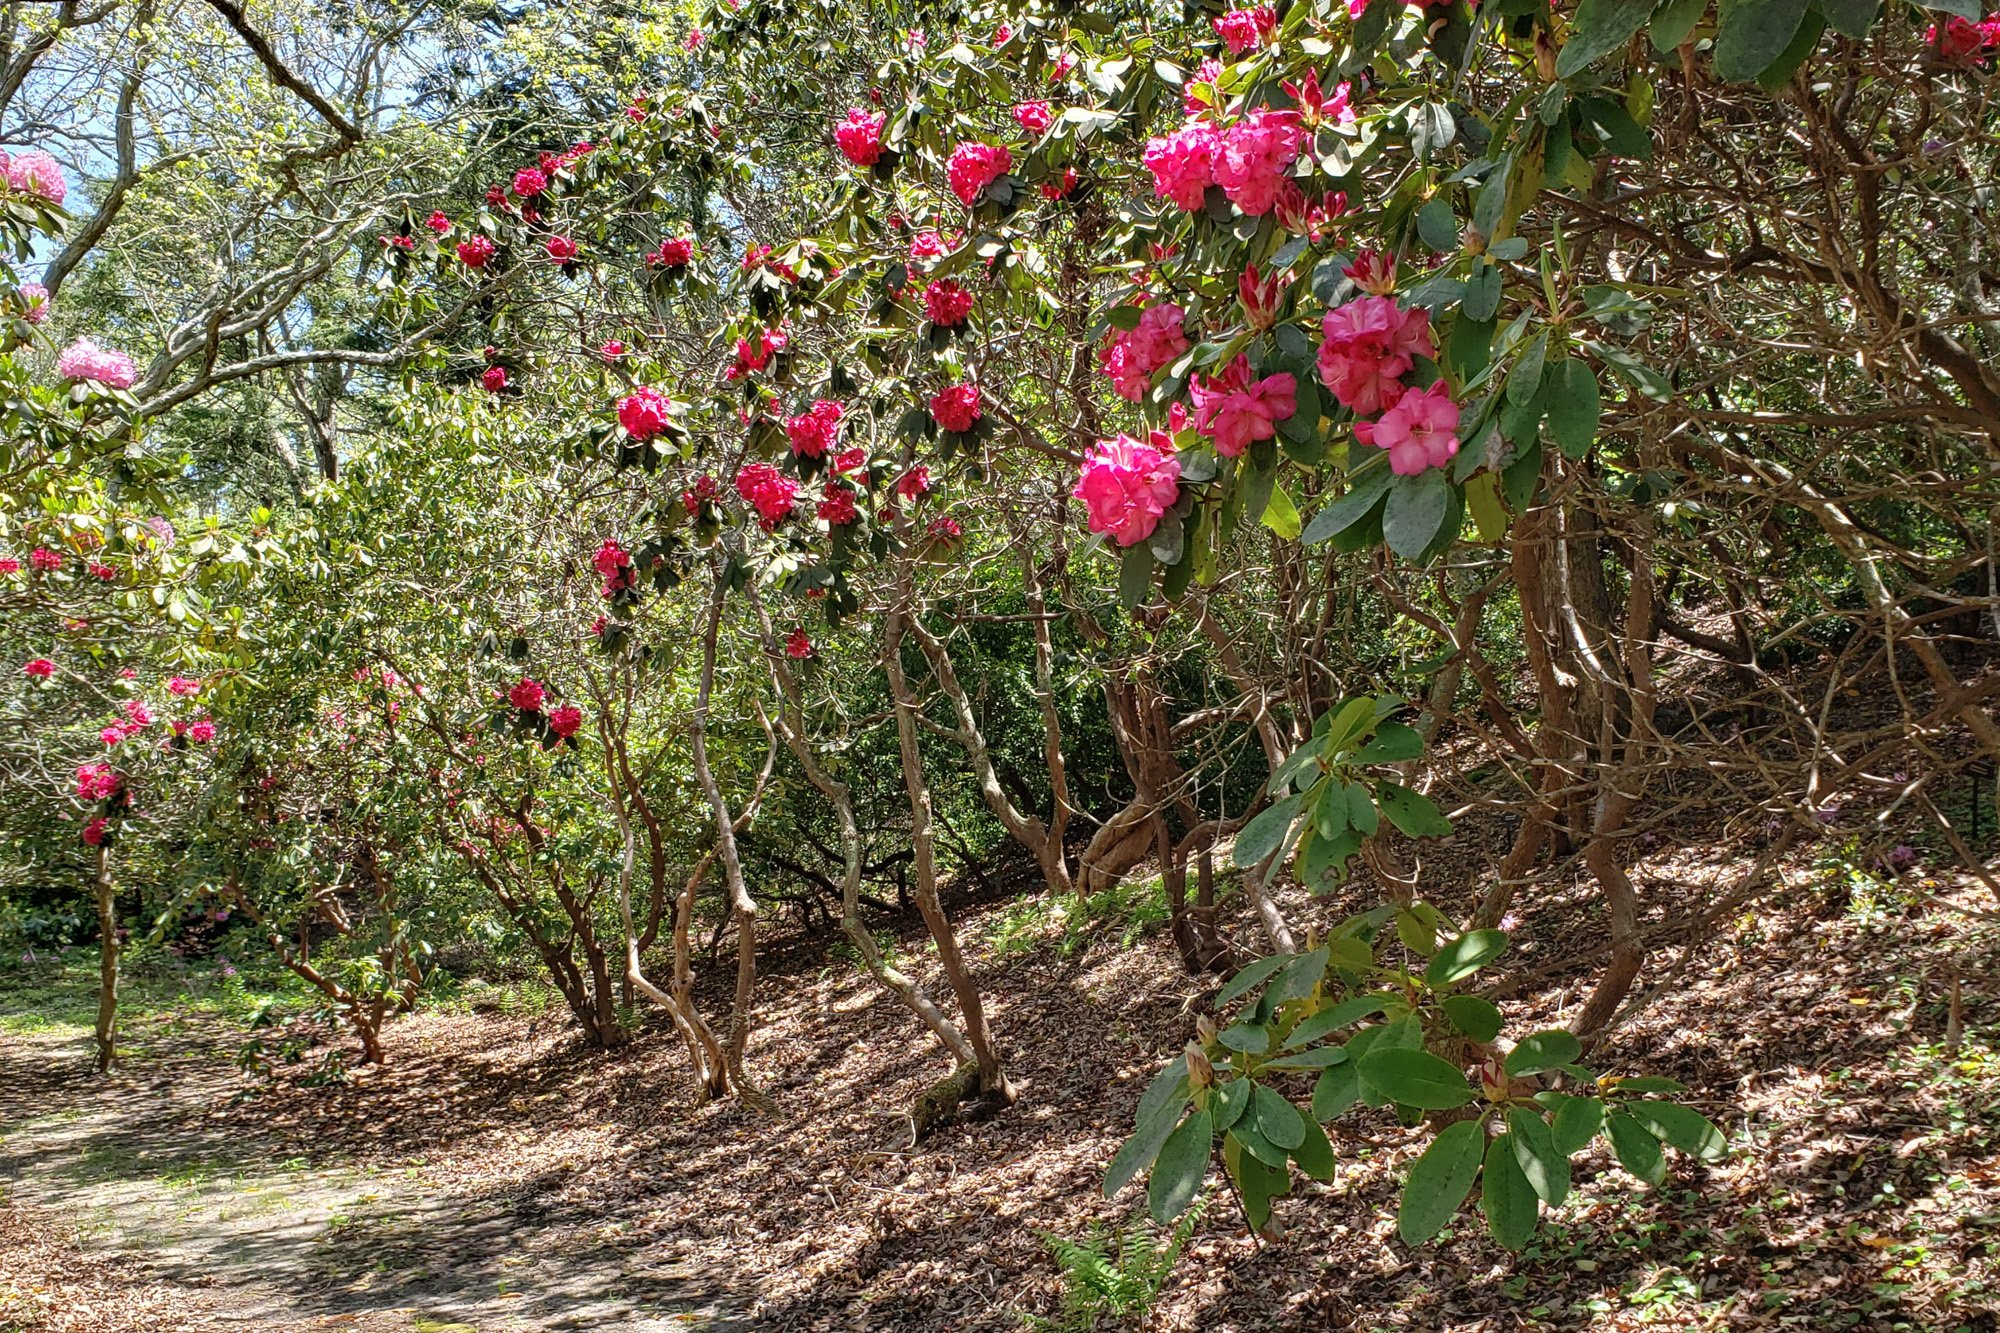 Rhododendron in woods